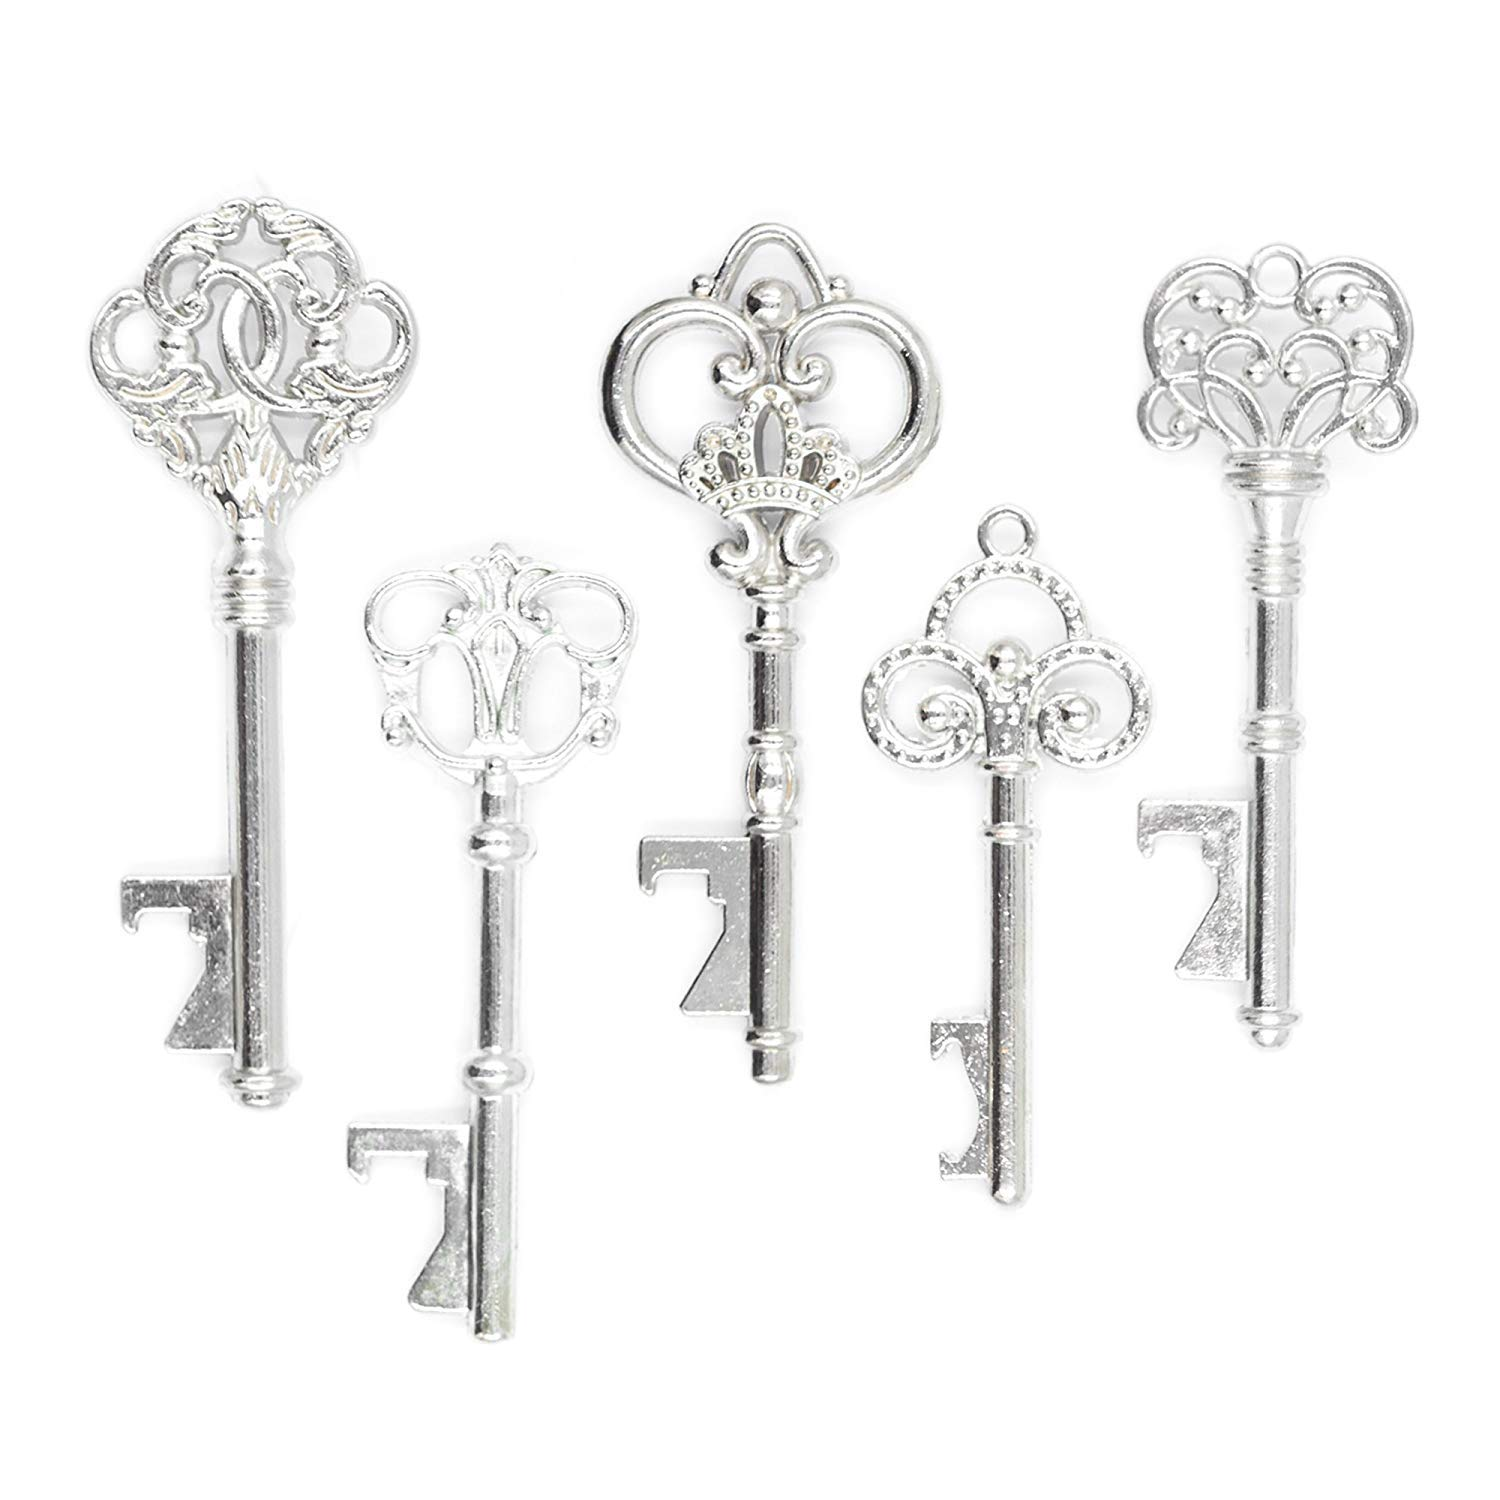 50 Key Bottle Openers, Assorted Vintage Skeleton Keys, Wedding Party Favors (Antique Gold) Ella Celebration